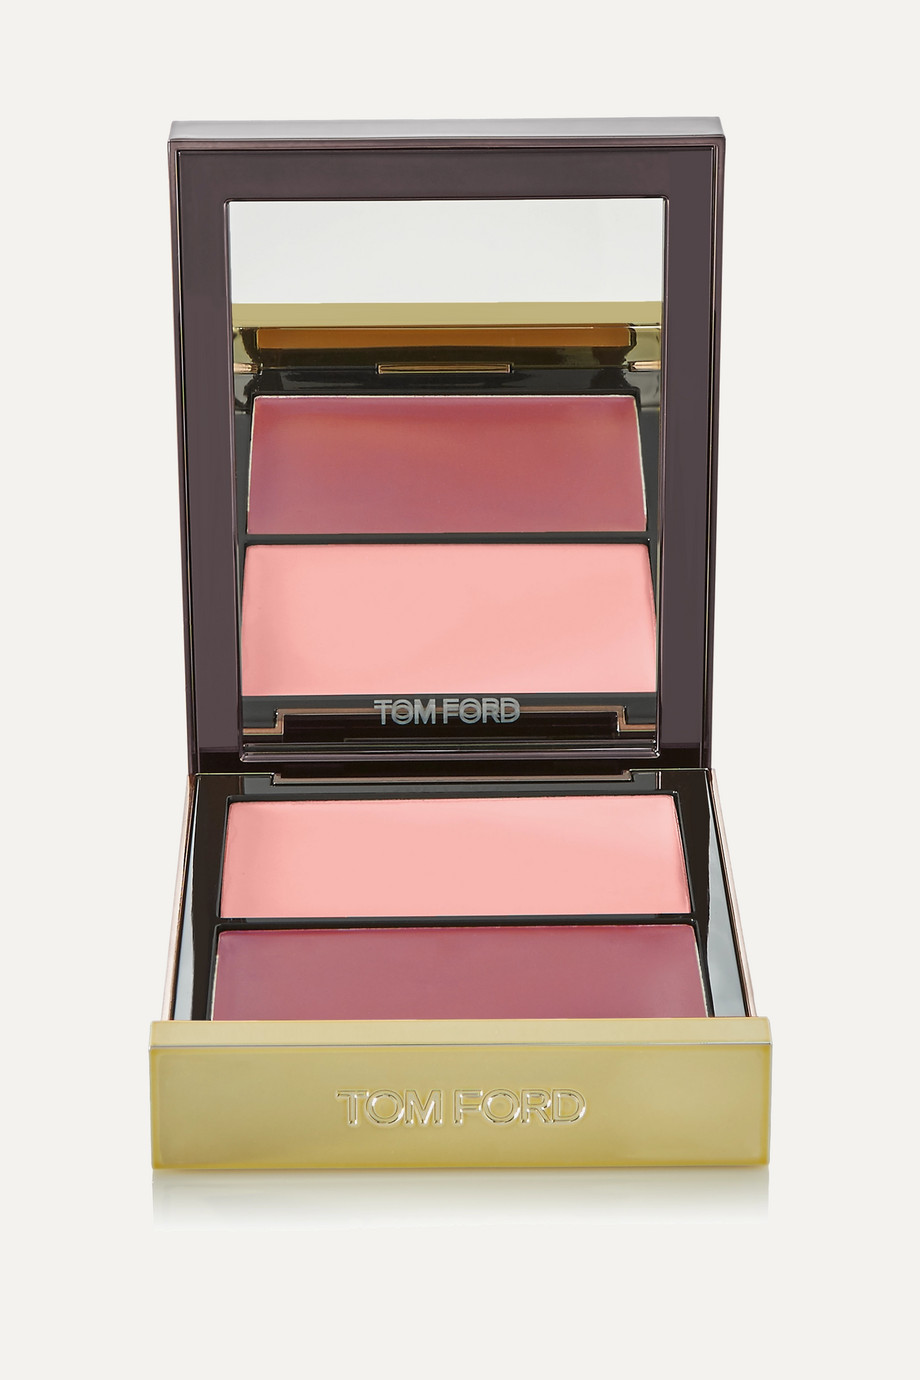 TOM FORD BEAUTY Duo pour les joues Shade & Illuminate, Sublimate